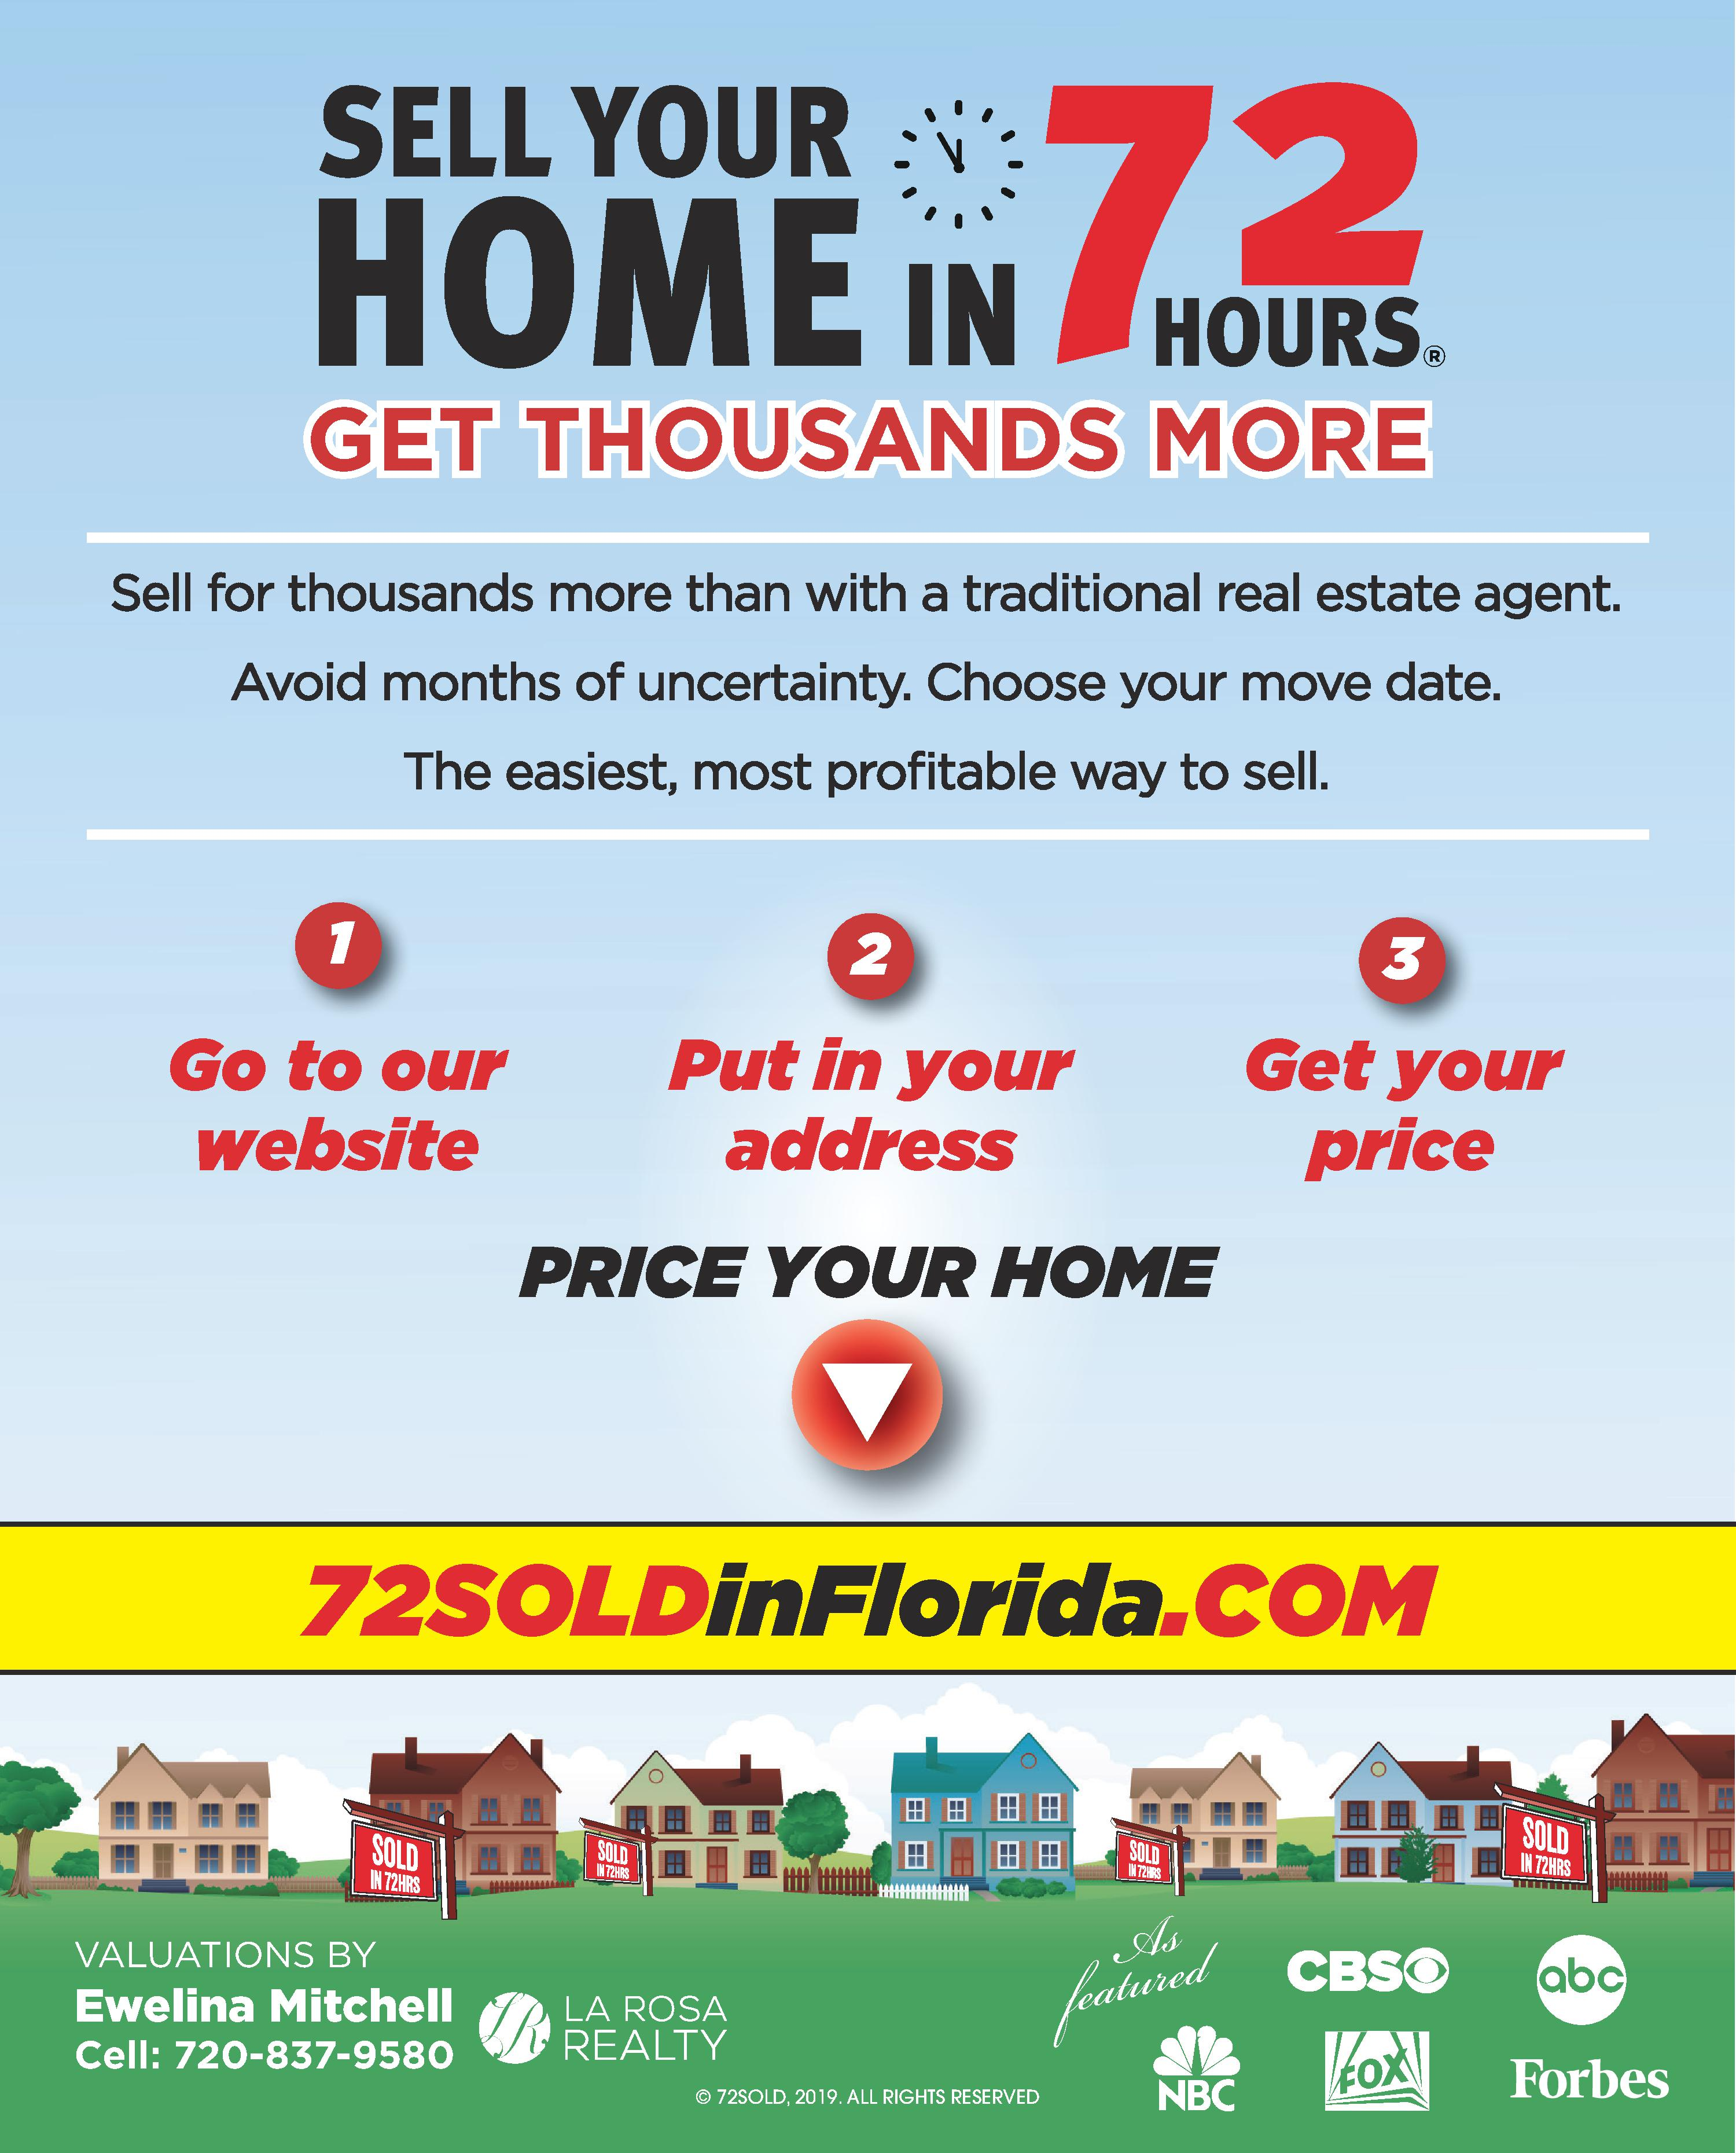 72Sold in Florida - Ewelina Mitchell Realtor